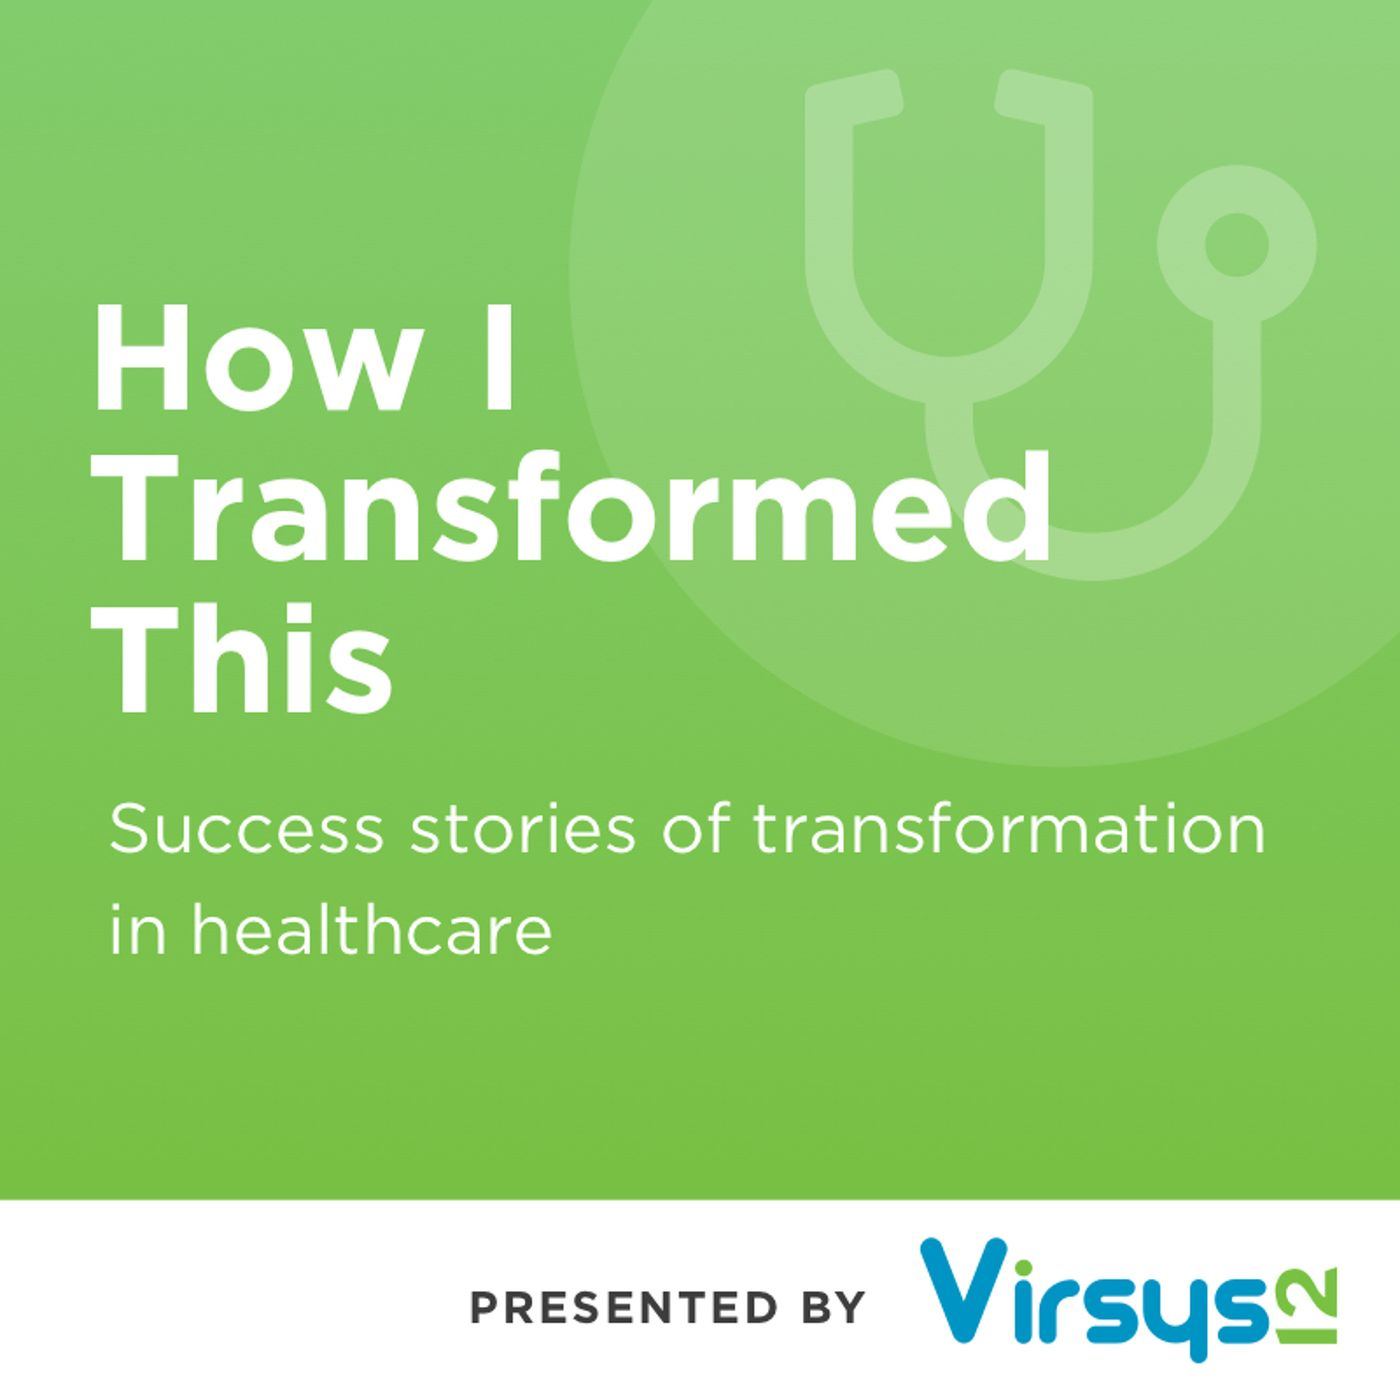 How I Transformed This: John Supra, Imagine What's Possible for Patient Outcomes